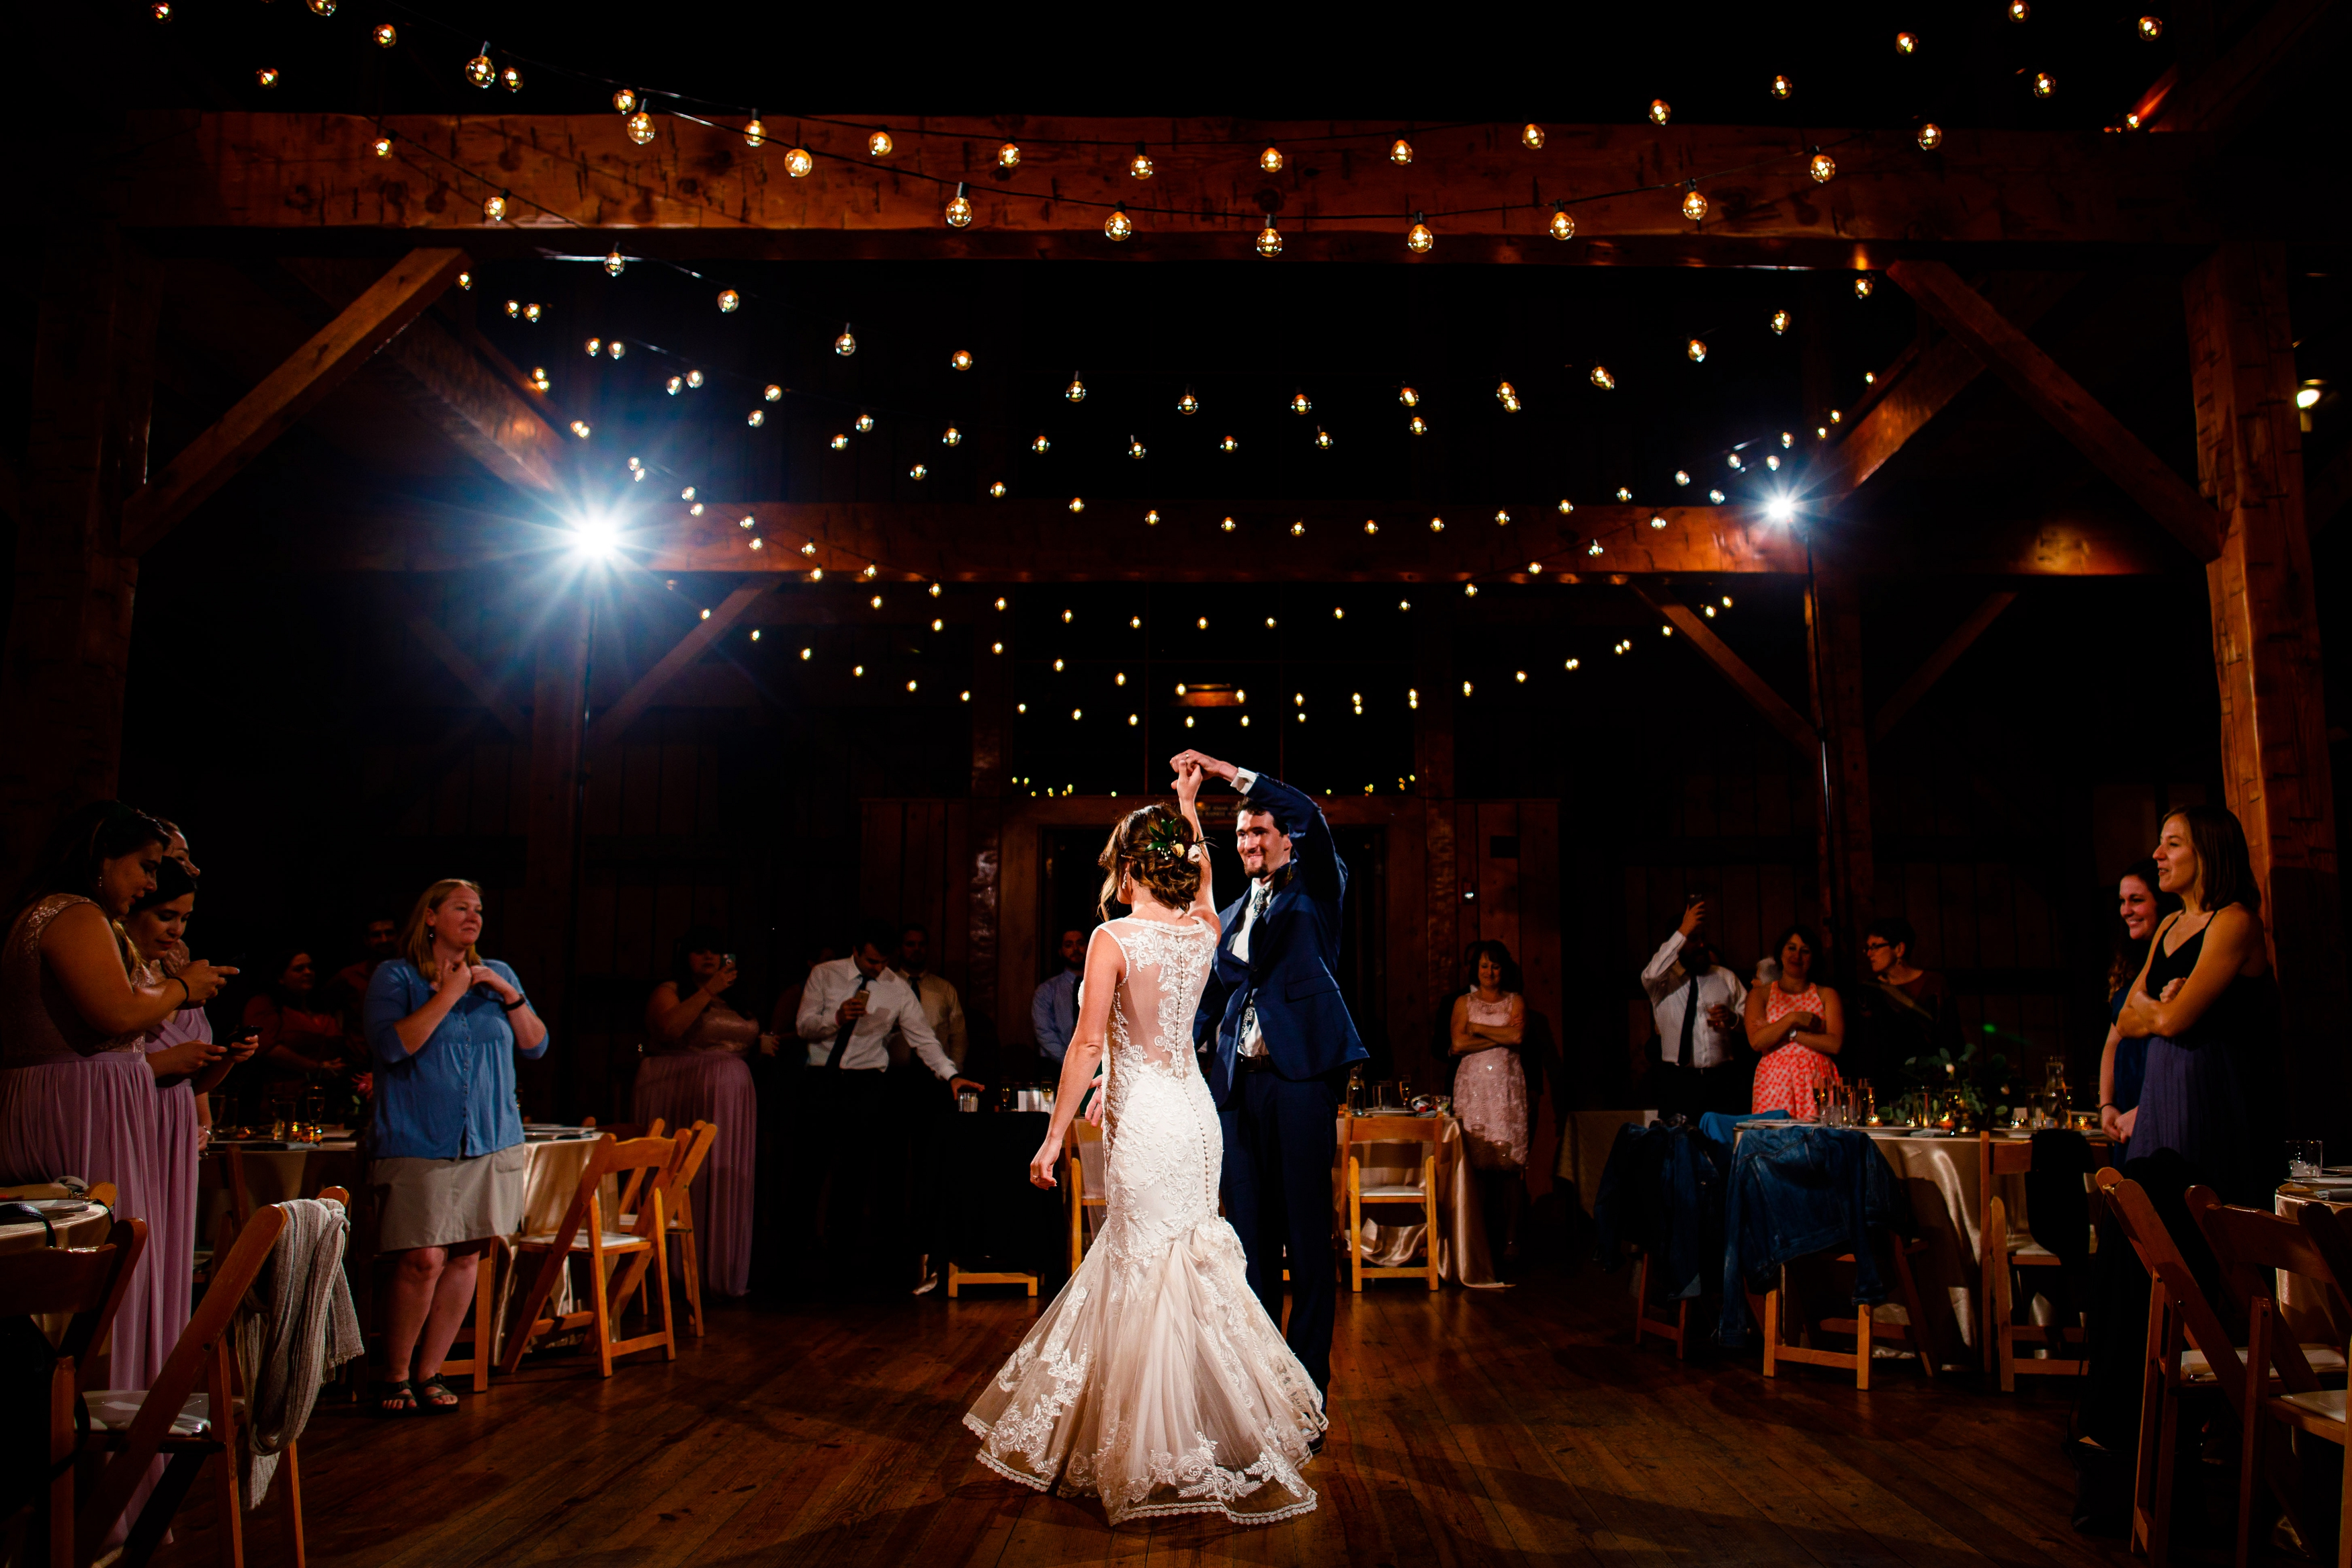 Griffin & Autumn share their first dance at the Old Thompson Barn during their wedding reception.